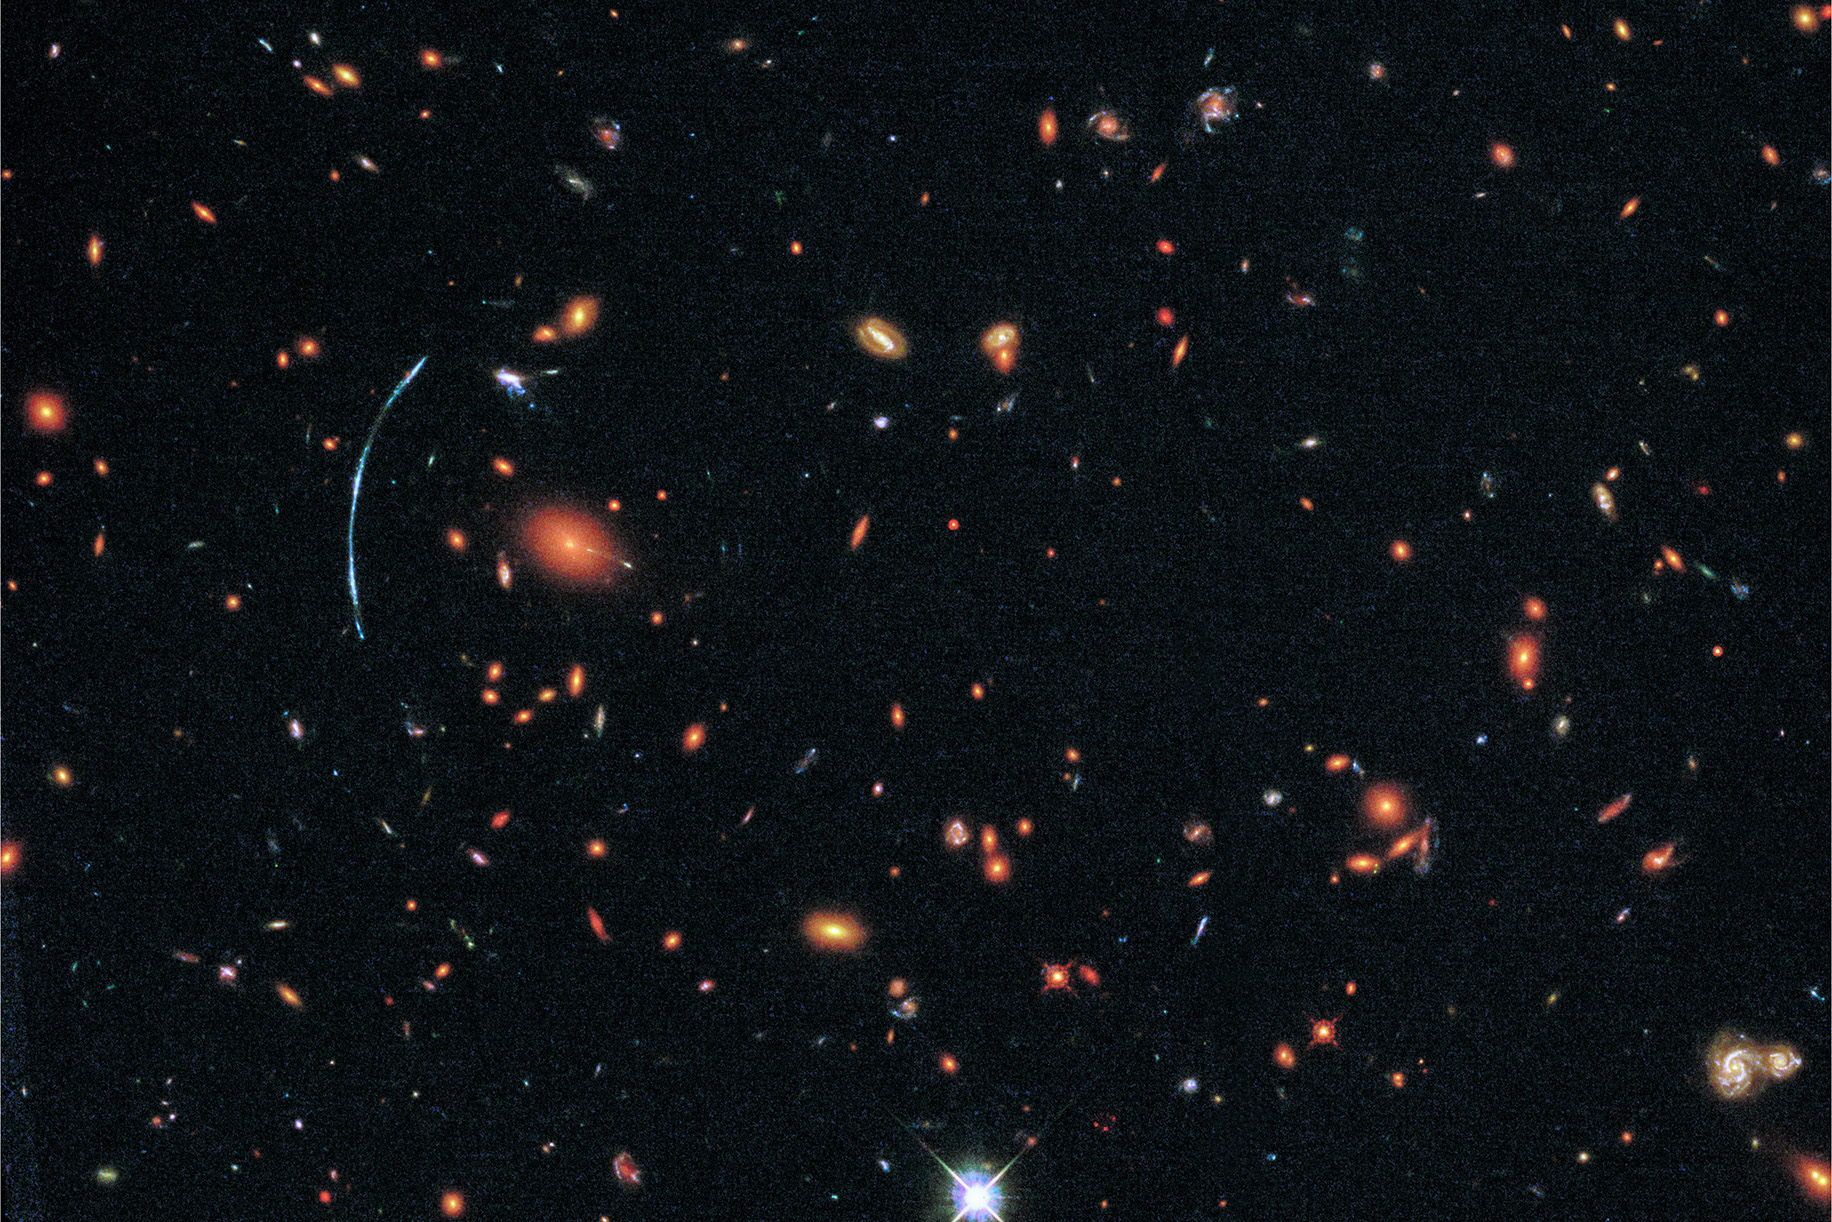 The galaxy cluster shown here, SDSS J1110+6459, was discovered as part of the Sloan Giant Arcs Survey. It is located about 6 billion light-years from Earth (redshift of z=0.659) and contains hundreds of galaxies. At left, a distinctive blue arc is actually composed of three separate images of a more distant background galaxy called SGAS J111020.0+645950.8. The background galaxy has been magnified, distorted, and multiply imaged by the gravity of the galaxy cluster in a process known as gravitational lensing. (HUBBLESITE)